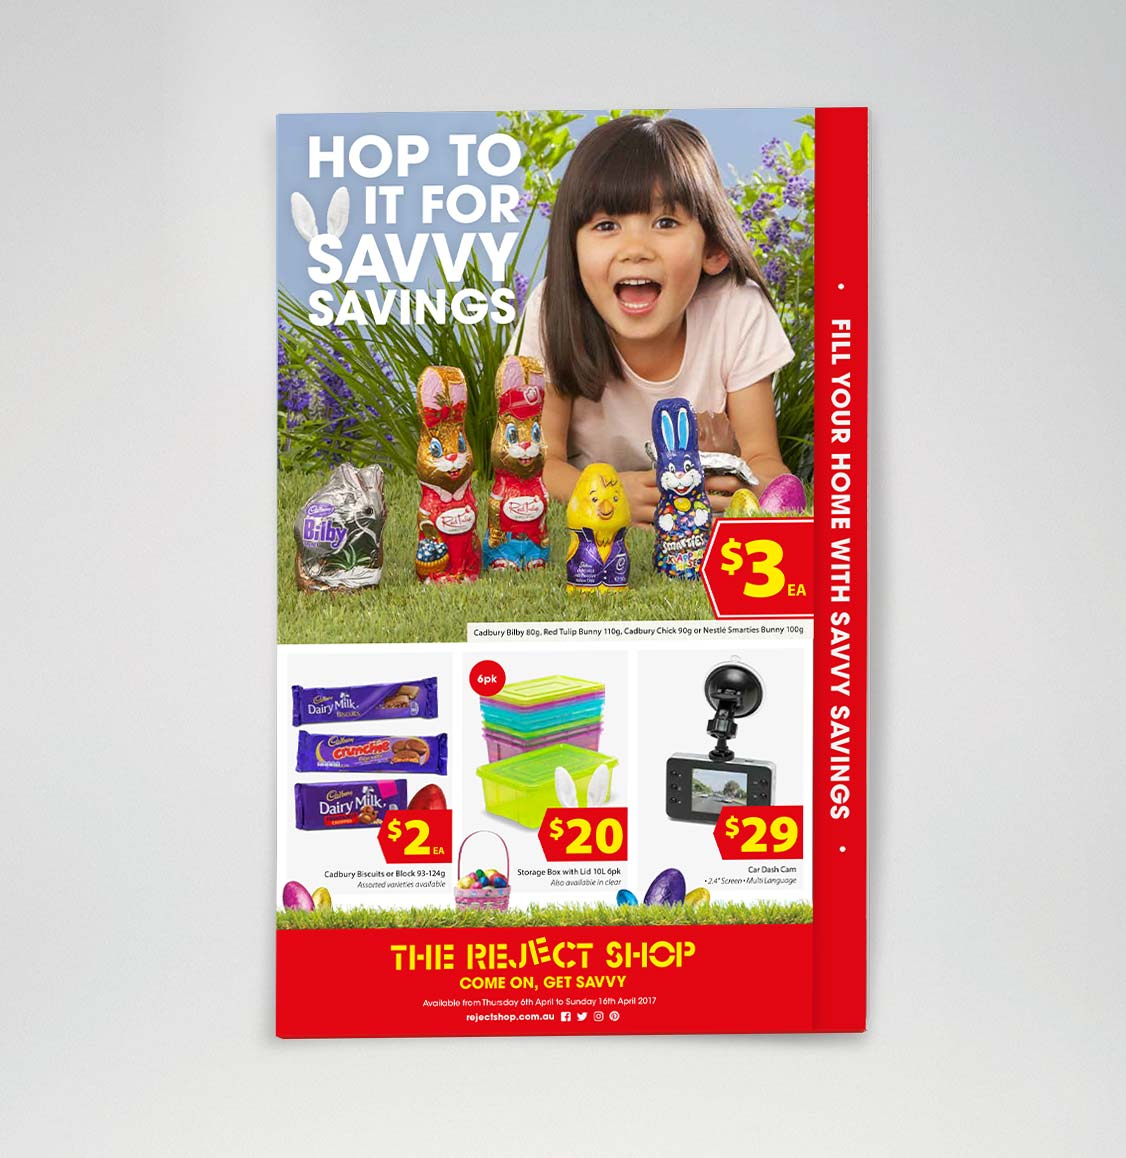 The Reject Shop catalogue cover showing Savvy Easter Savings